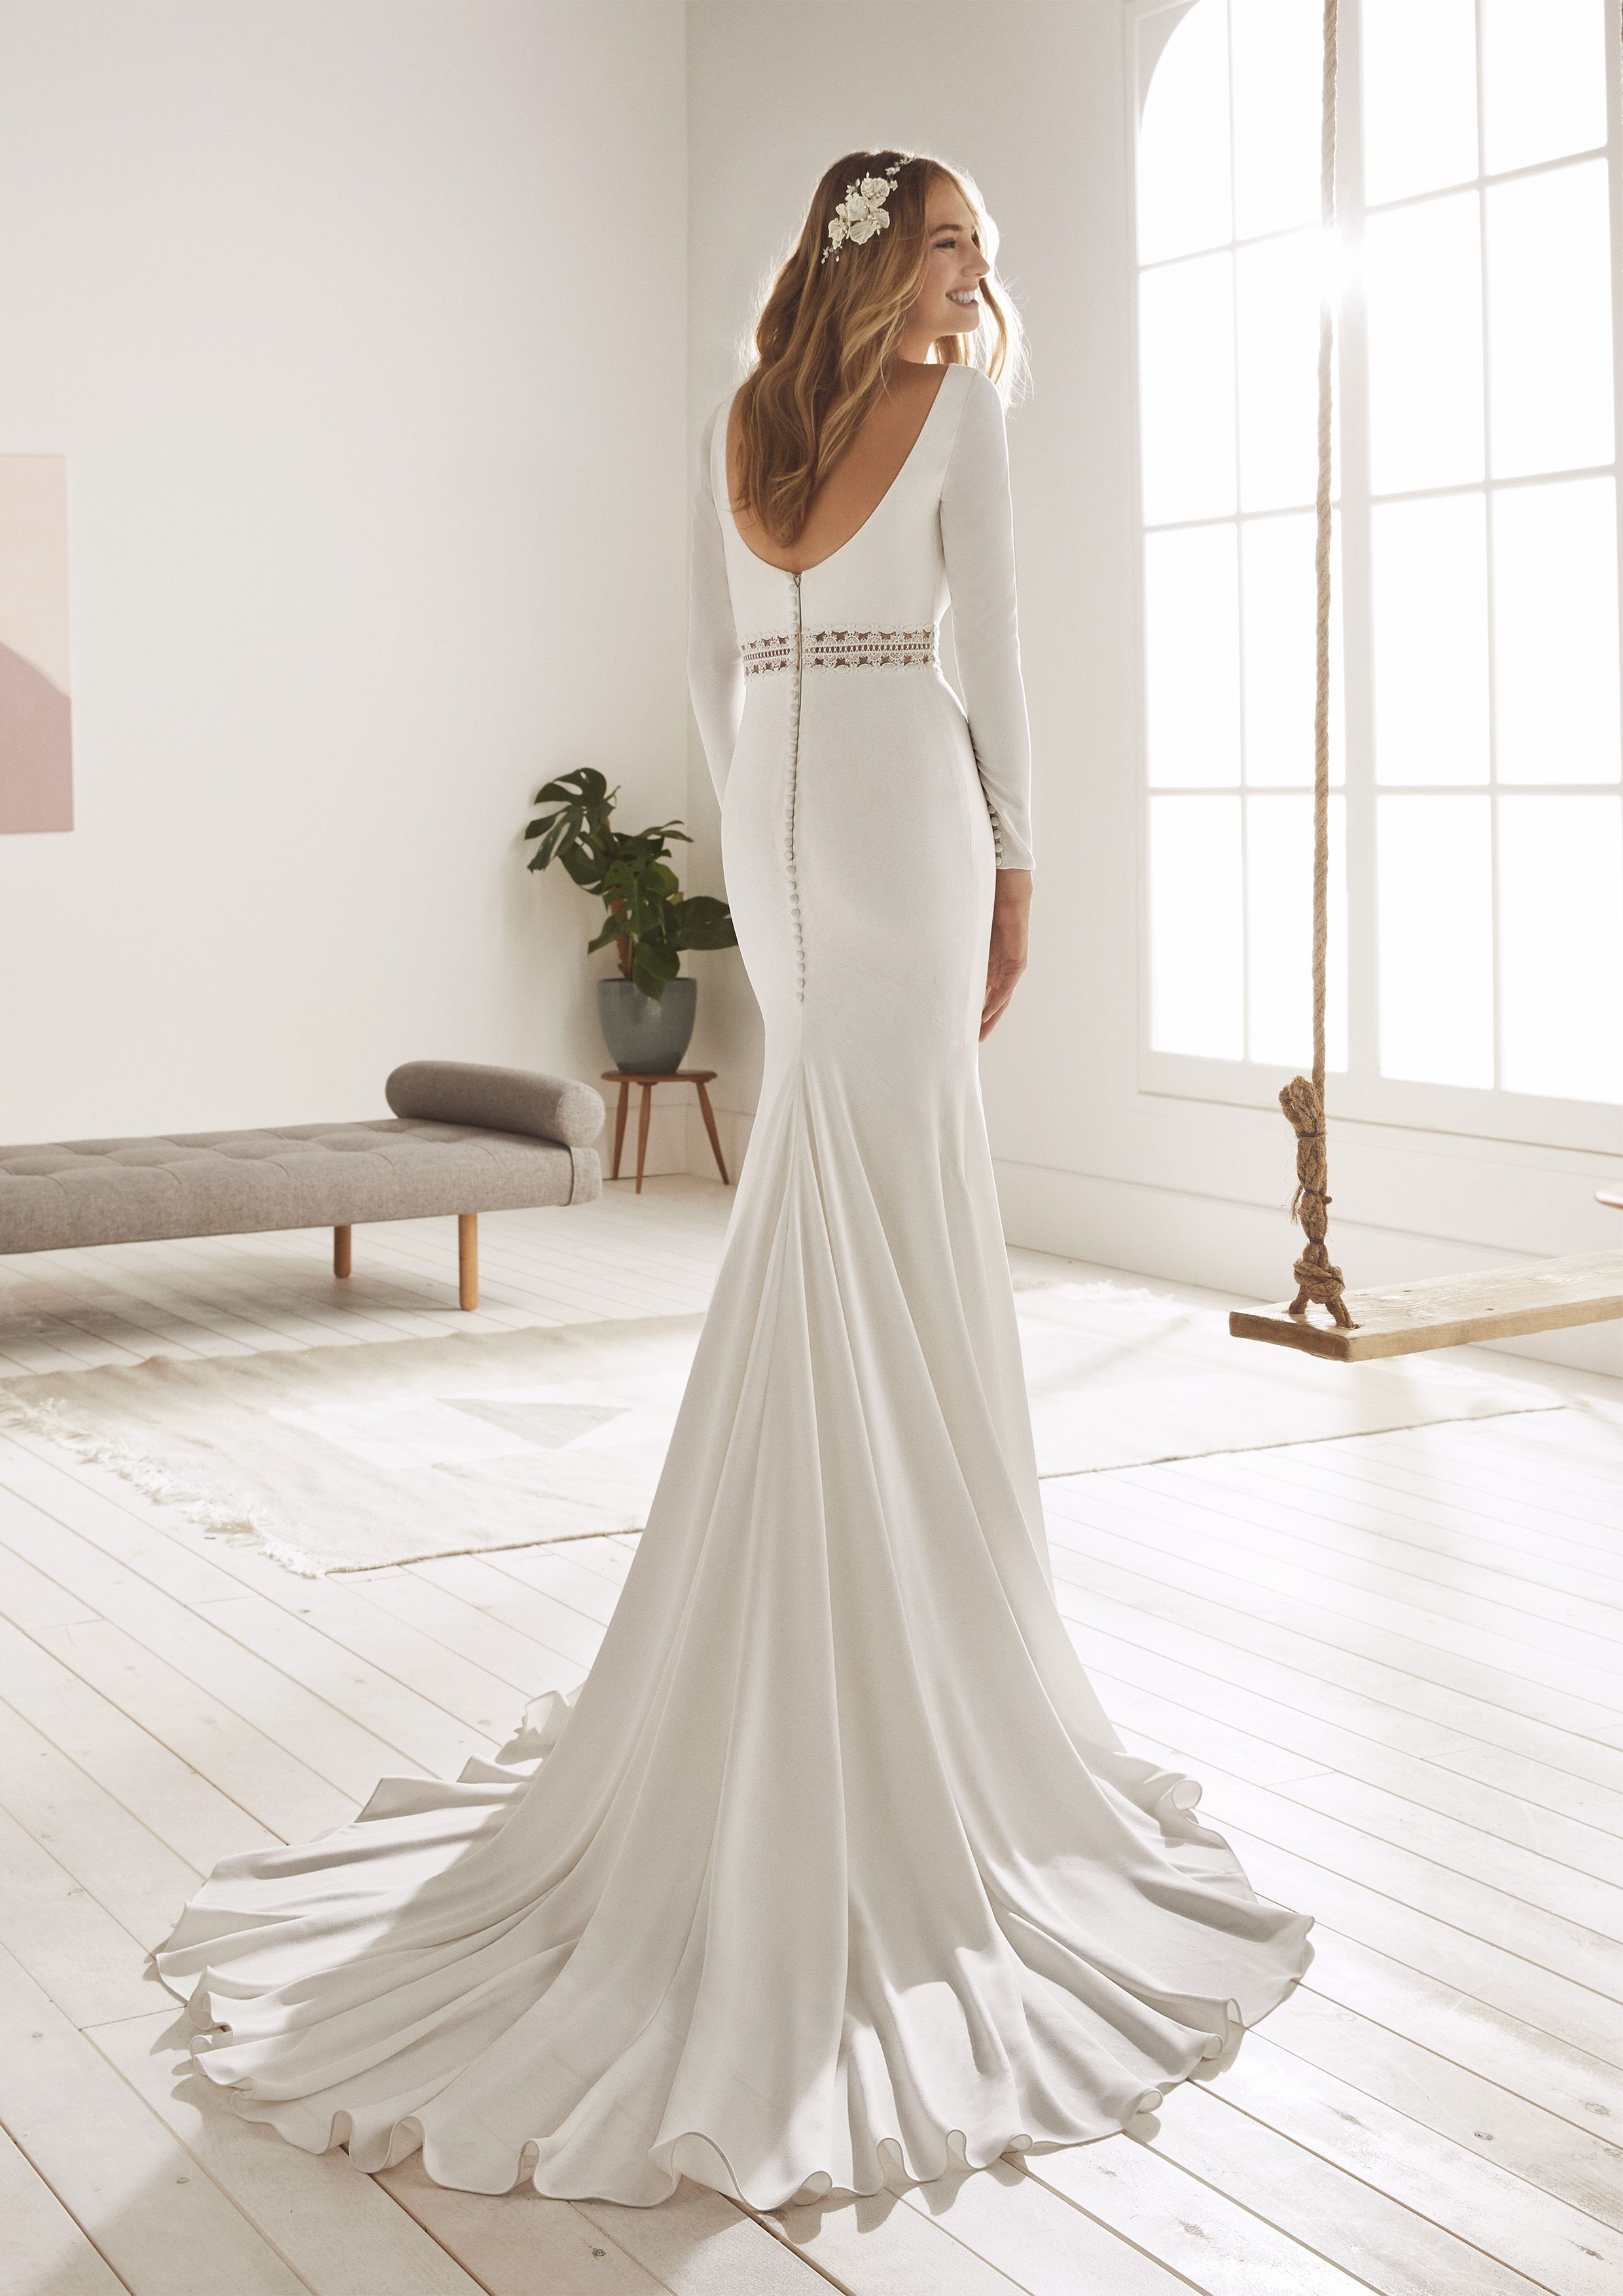 White One 2019 Collection Oboe Wedding Dresses Elegant Bridal Gown Wedding Dresses Lace